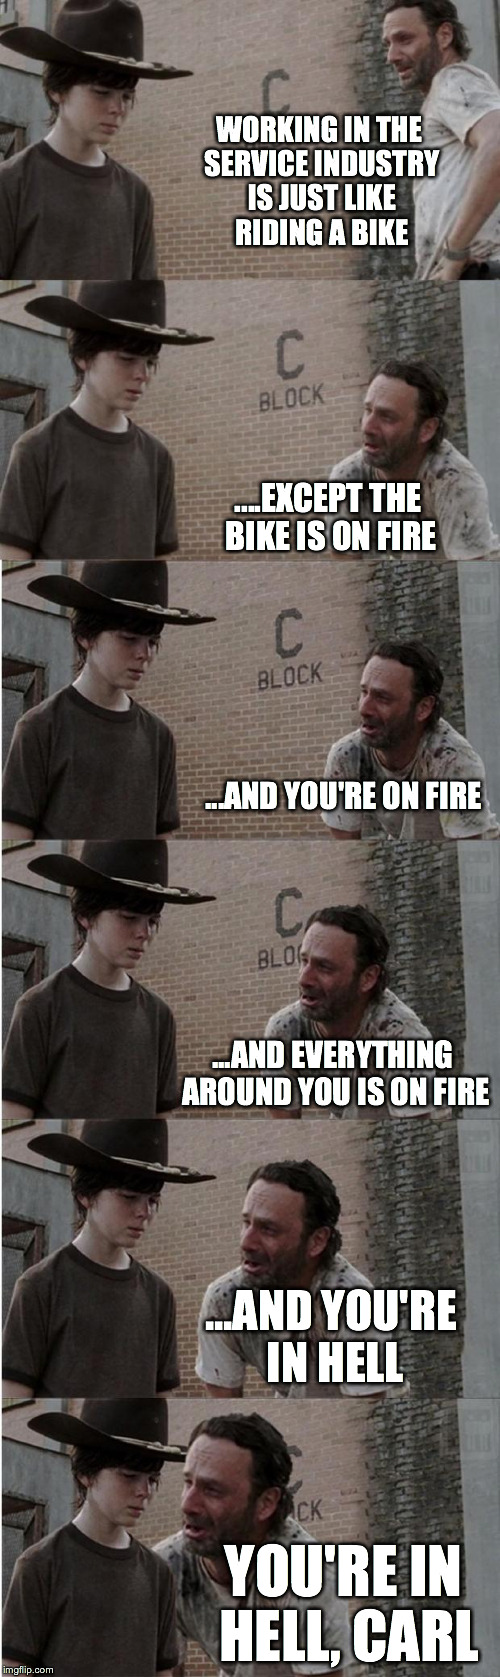 Rick and Carl Longer | WORKING IN THE SERVICE INDUSTRY IS JUST LIKE RIDING A BIKE ....EXCEPT THE BIKE IS ON FIRE ...AND YOU'RE ON FIRE ...AND EVERYTHING AROUND YOU | image tagged in memes,rick and carl longer,retail,work,service,customer service | made w/ Imgflip meme maker